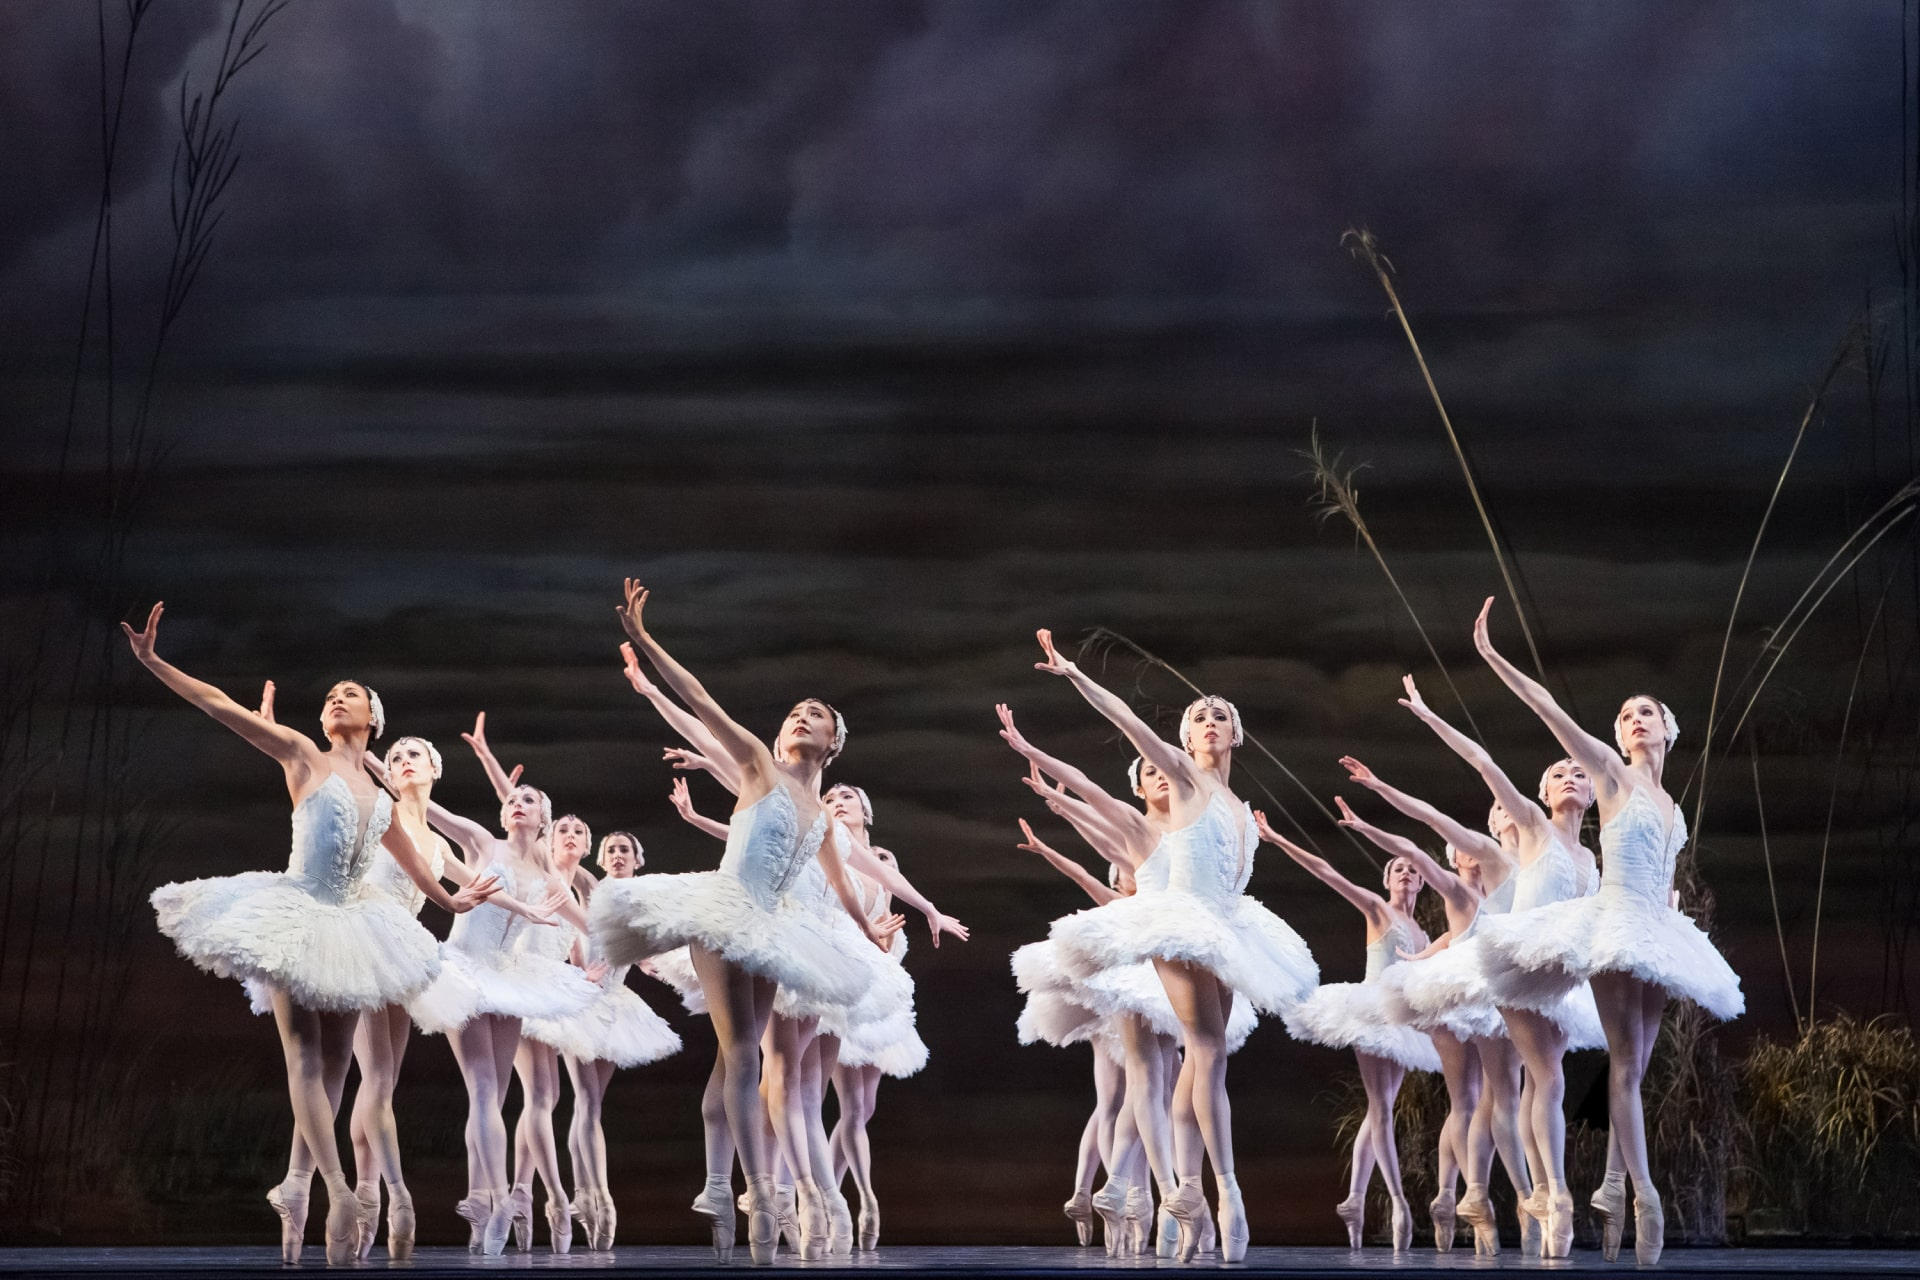 Four rows of ballerinas in white tutus extend arms on point, against background of stormy rolling clouds.